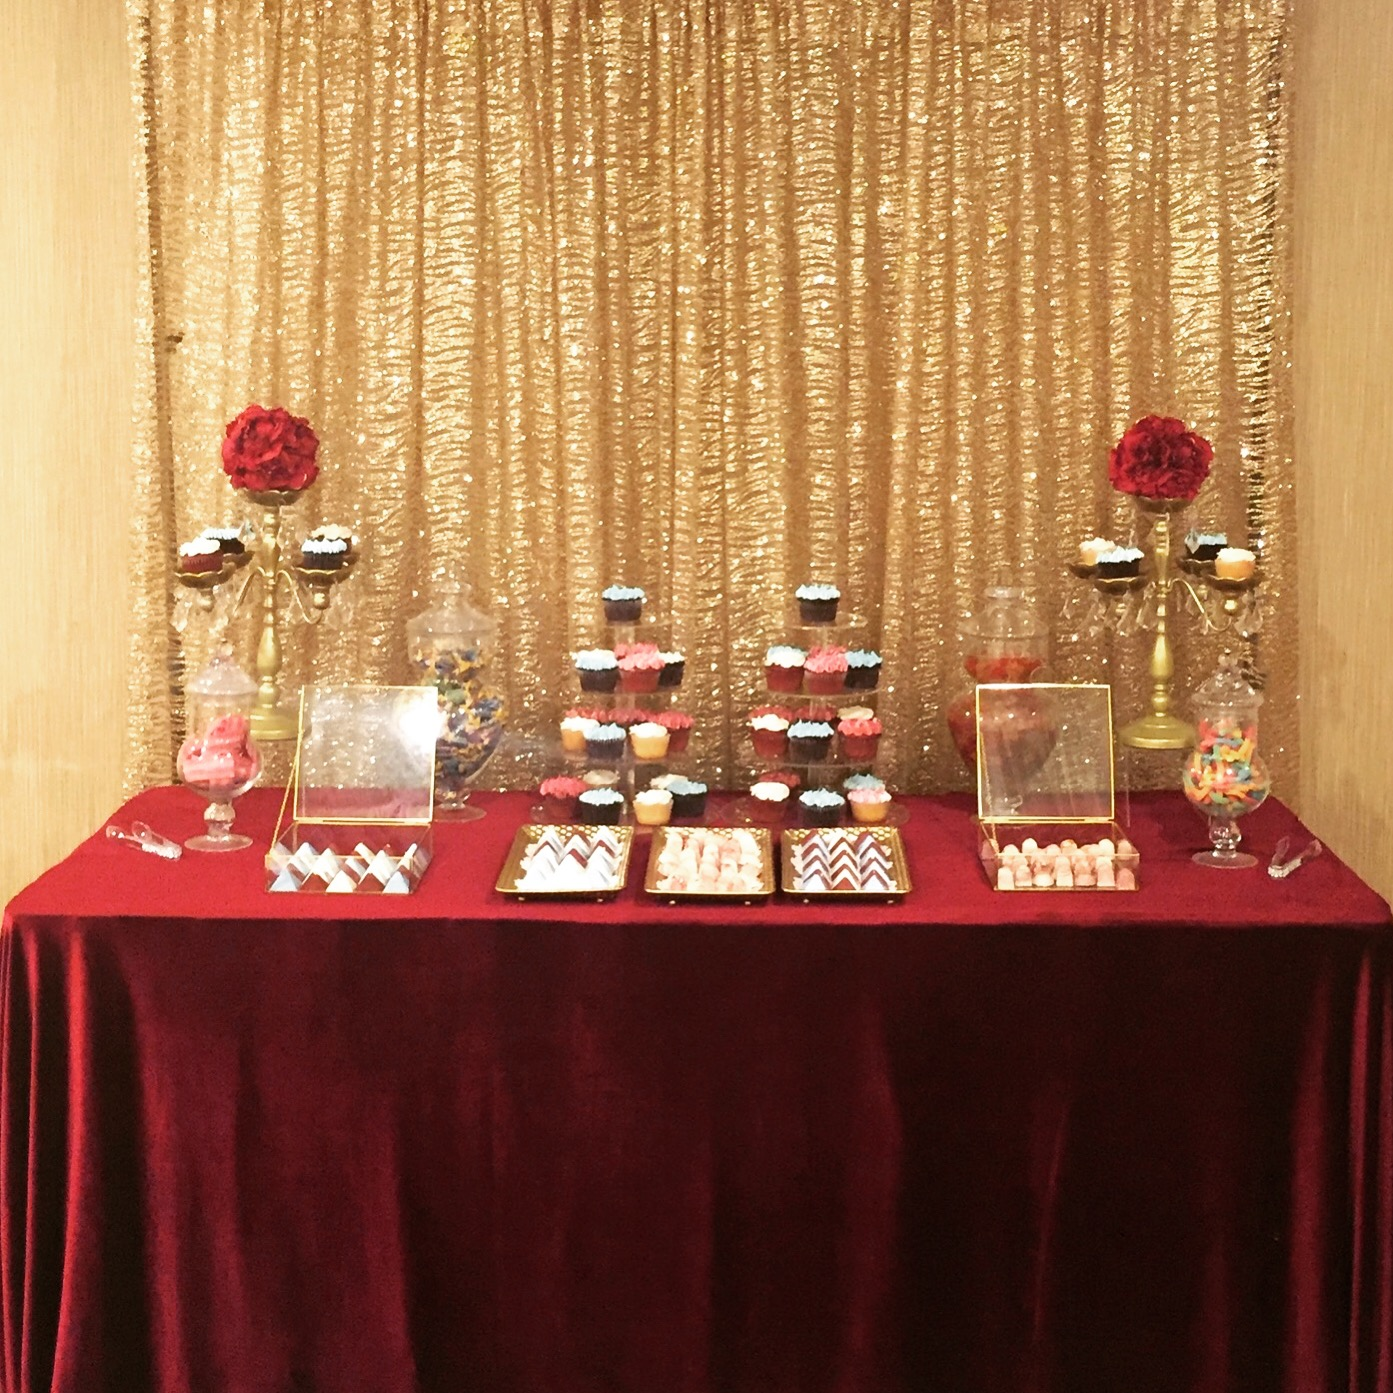 Gold & Burgundy dessert table.JPG